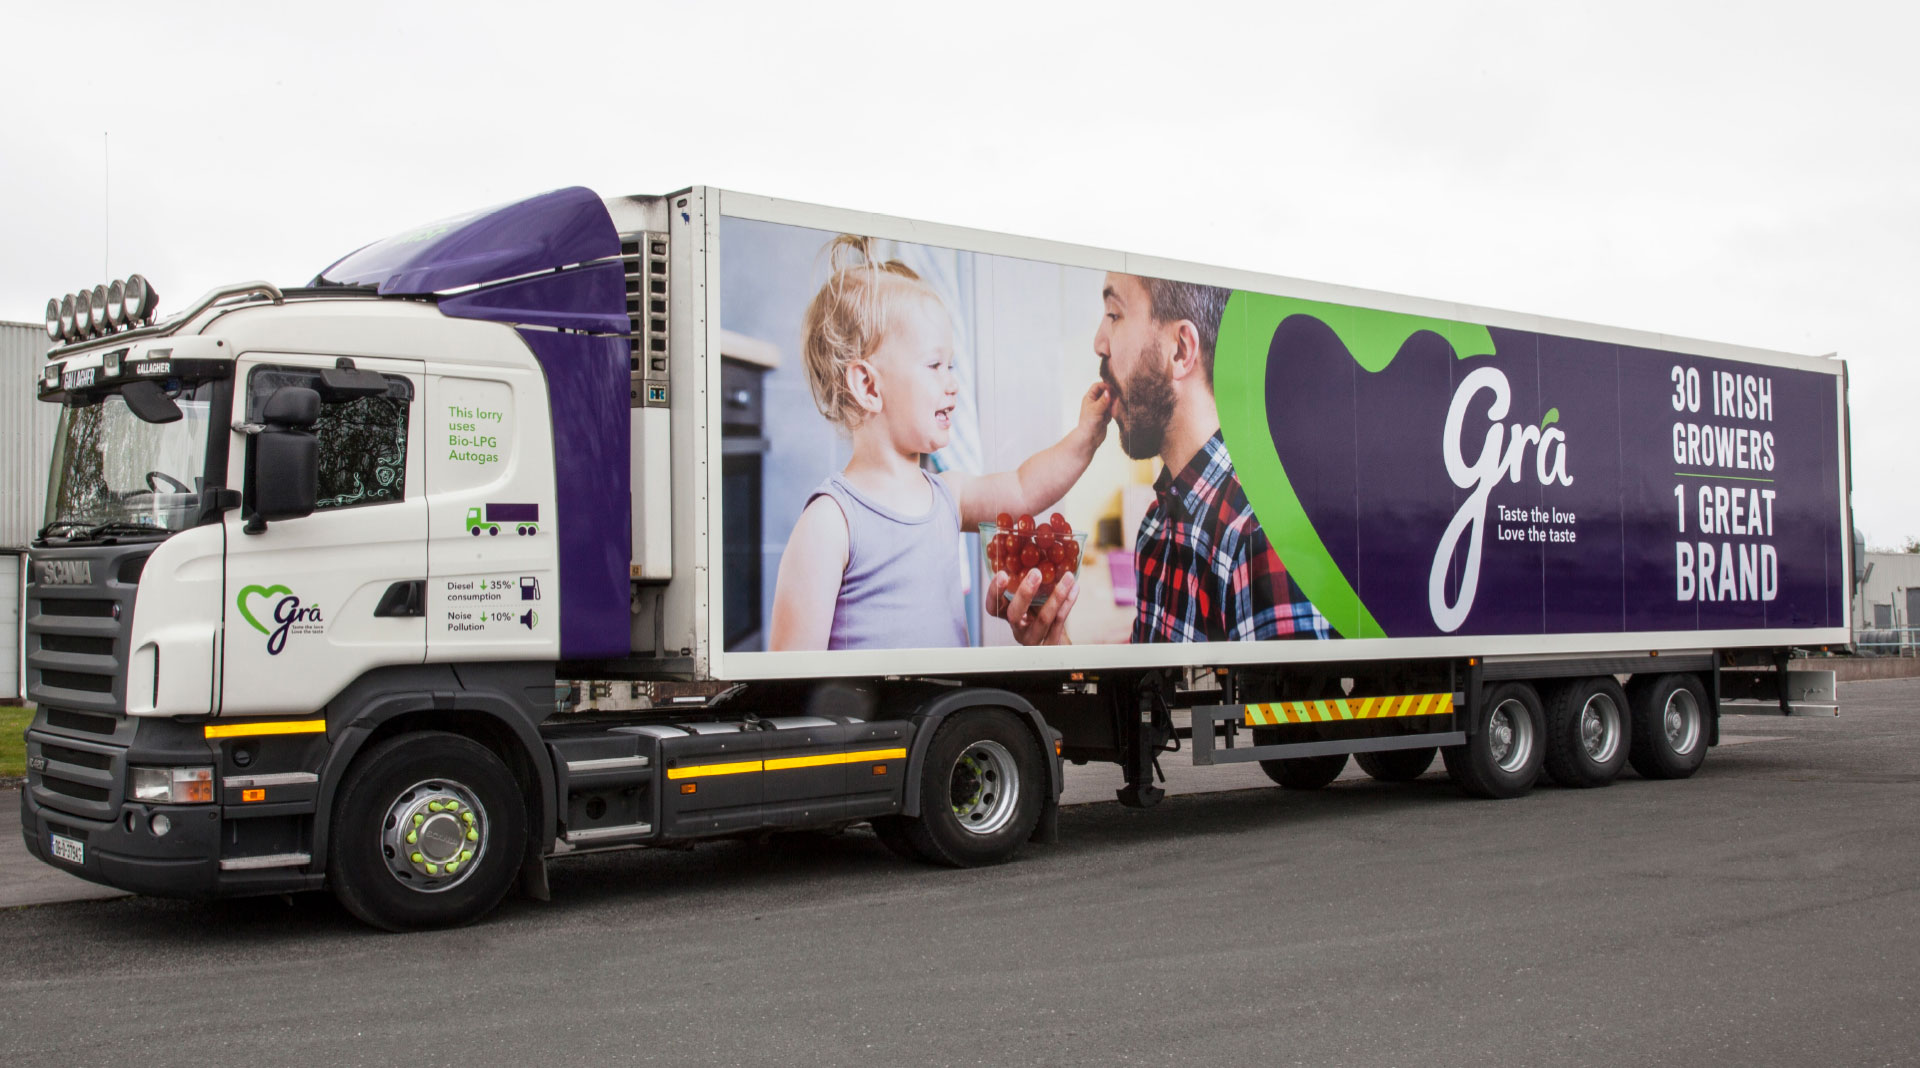 Grá truck and livery design.